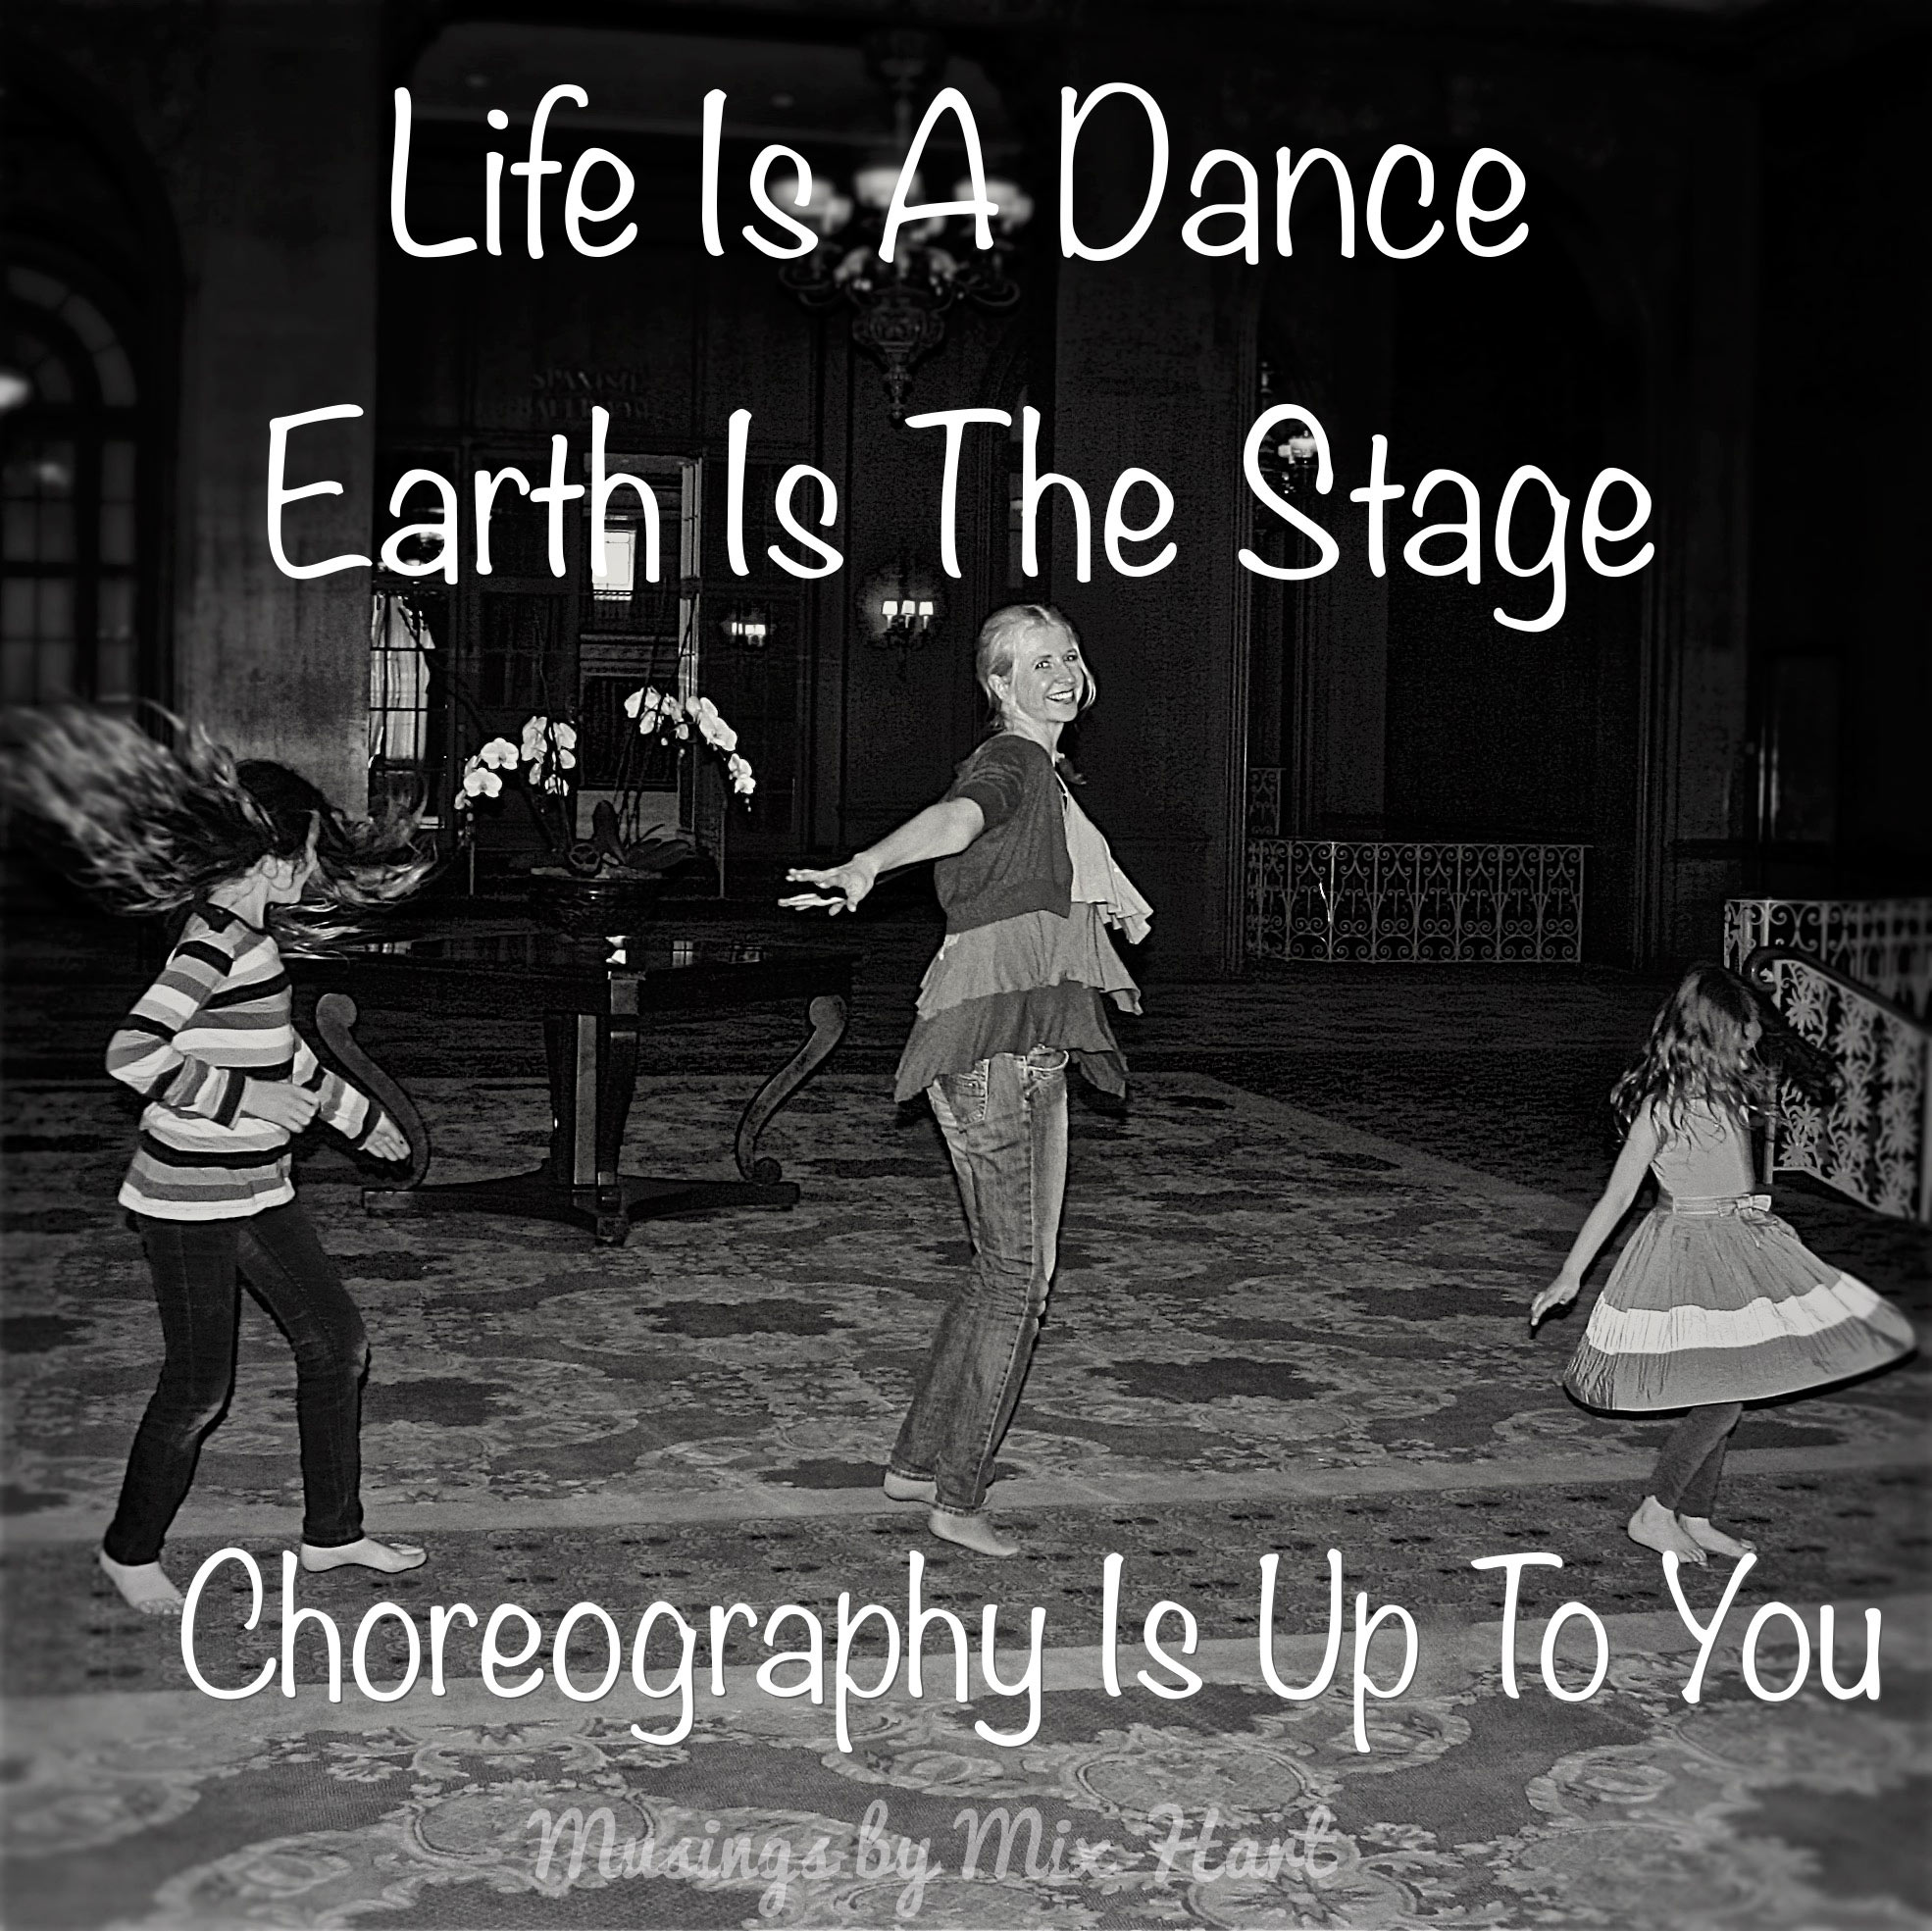 Life Is A Dance & Earth Is The Stage